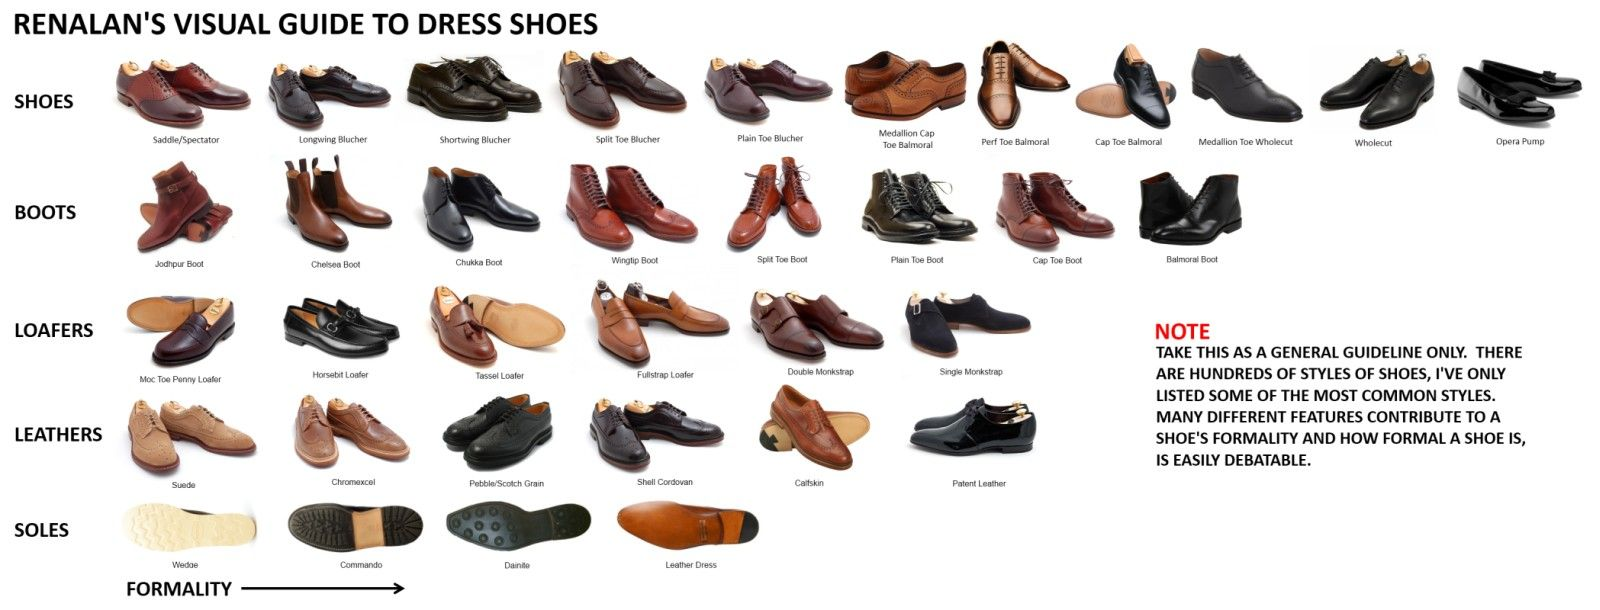 Guide To Dress Shoes Shoes Style Guide Dress Shoes Dress Shoes Men